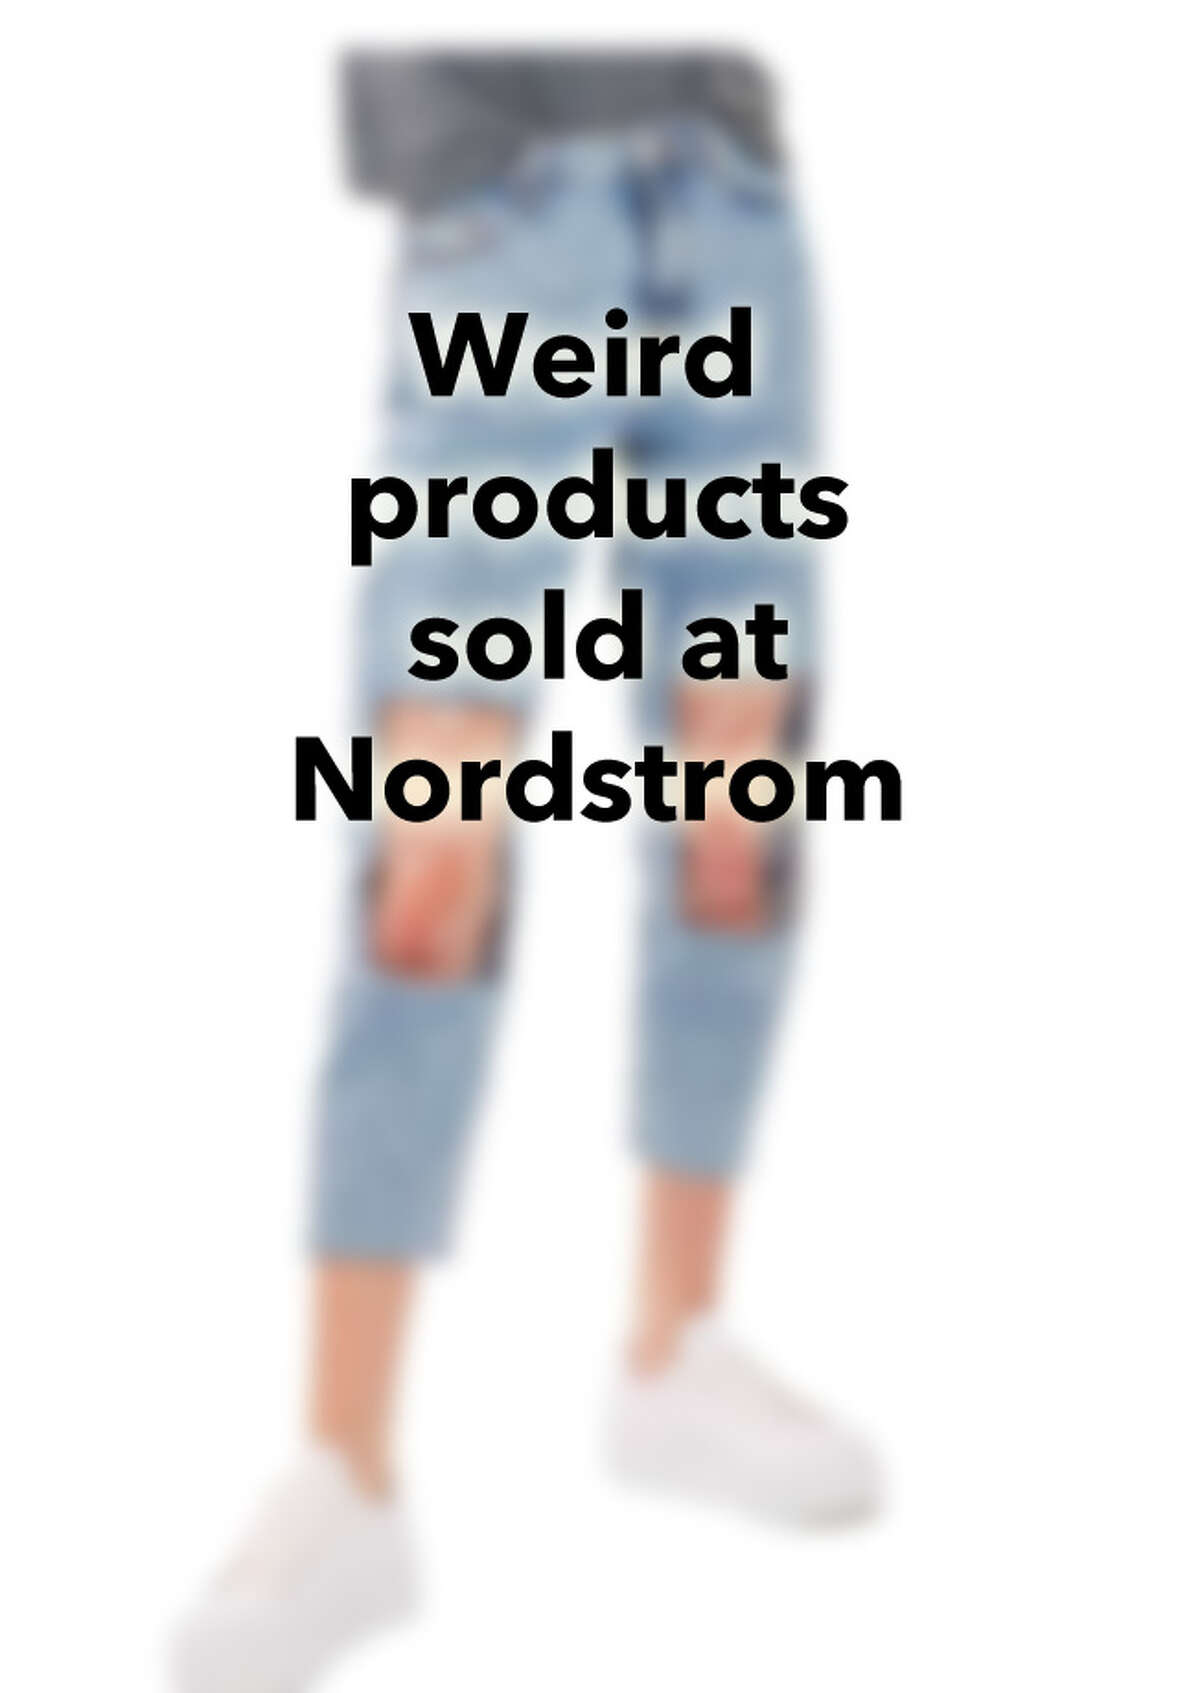 Weird products sold at Nordstrom